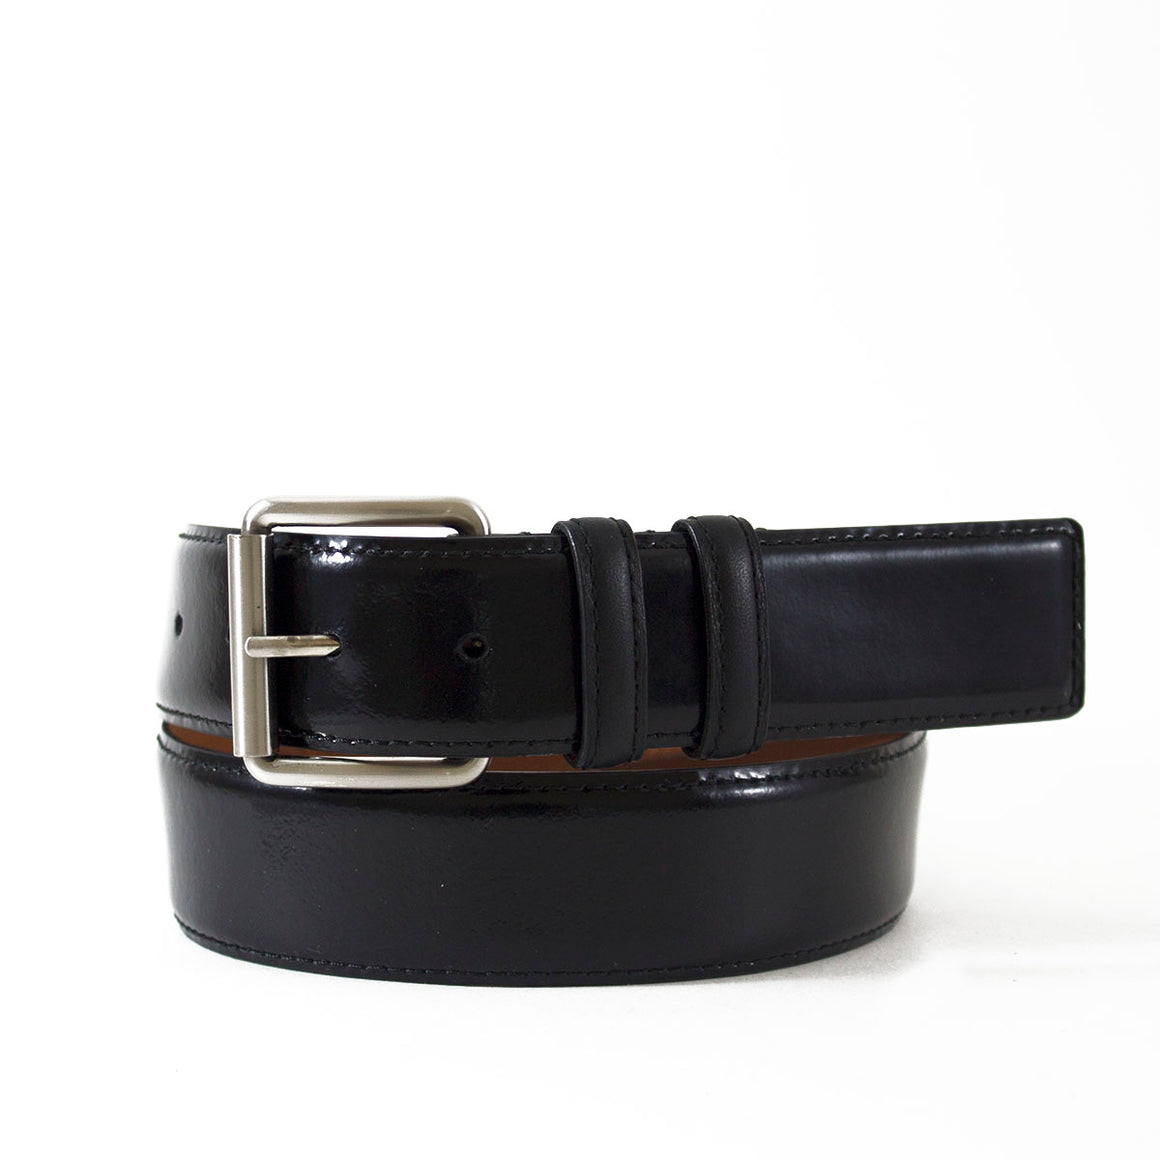 High Gloss Nappa Leather Belt with Matte Nappa Loops